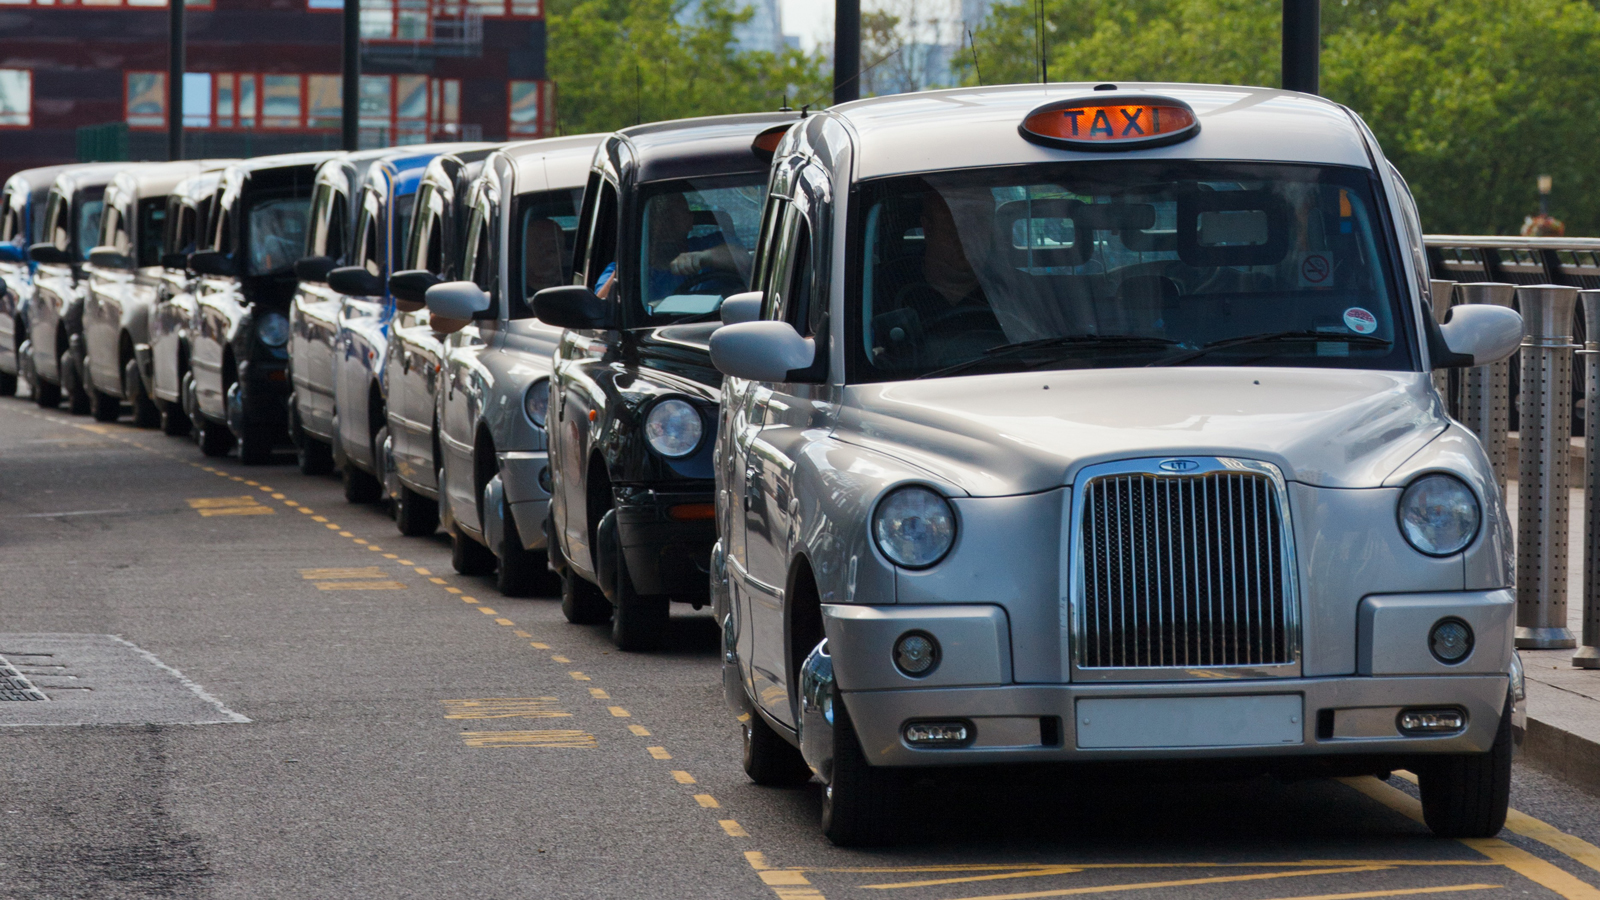 A taxi rank in London